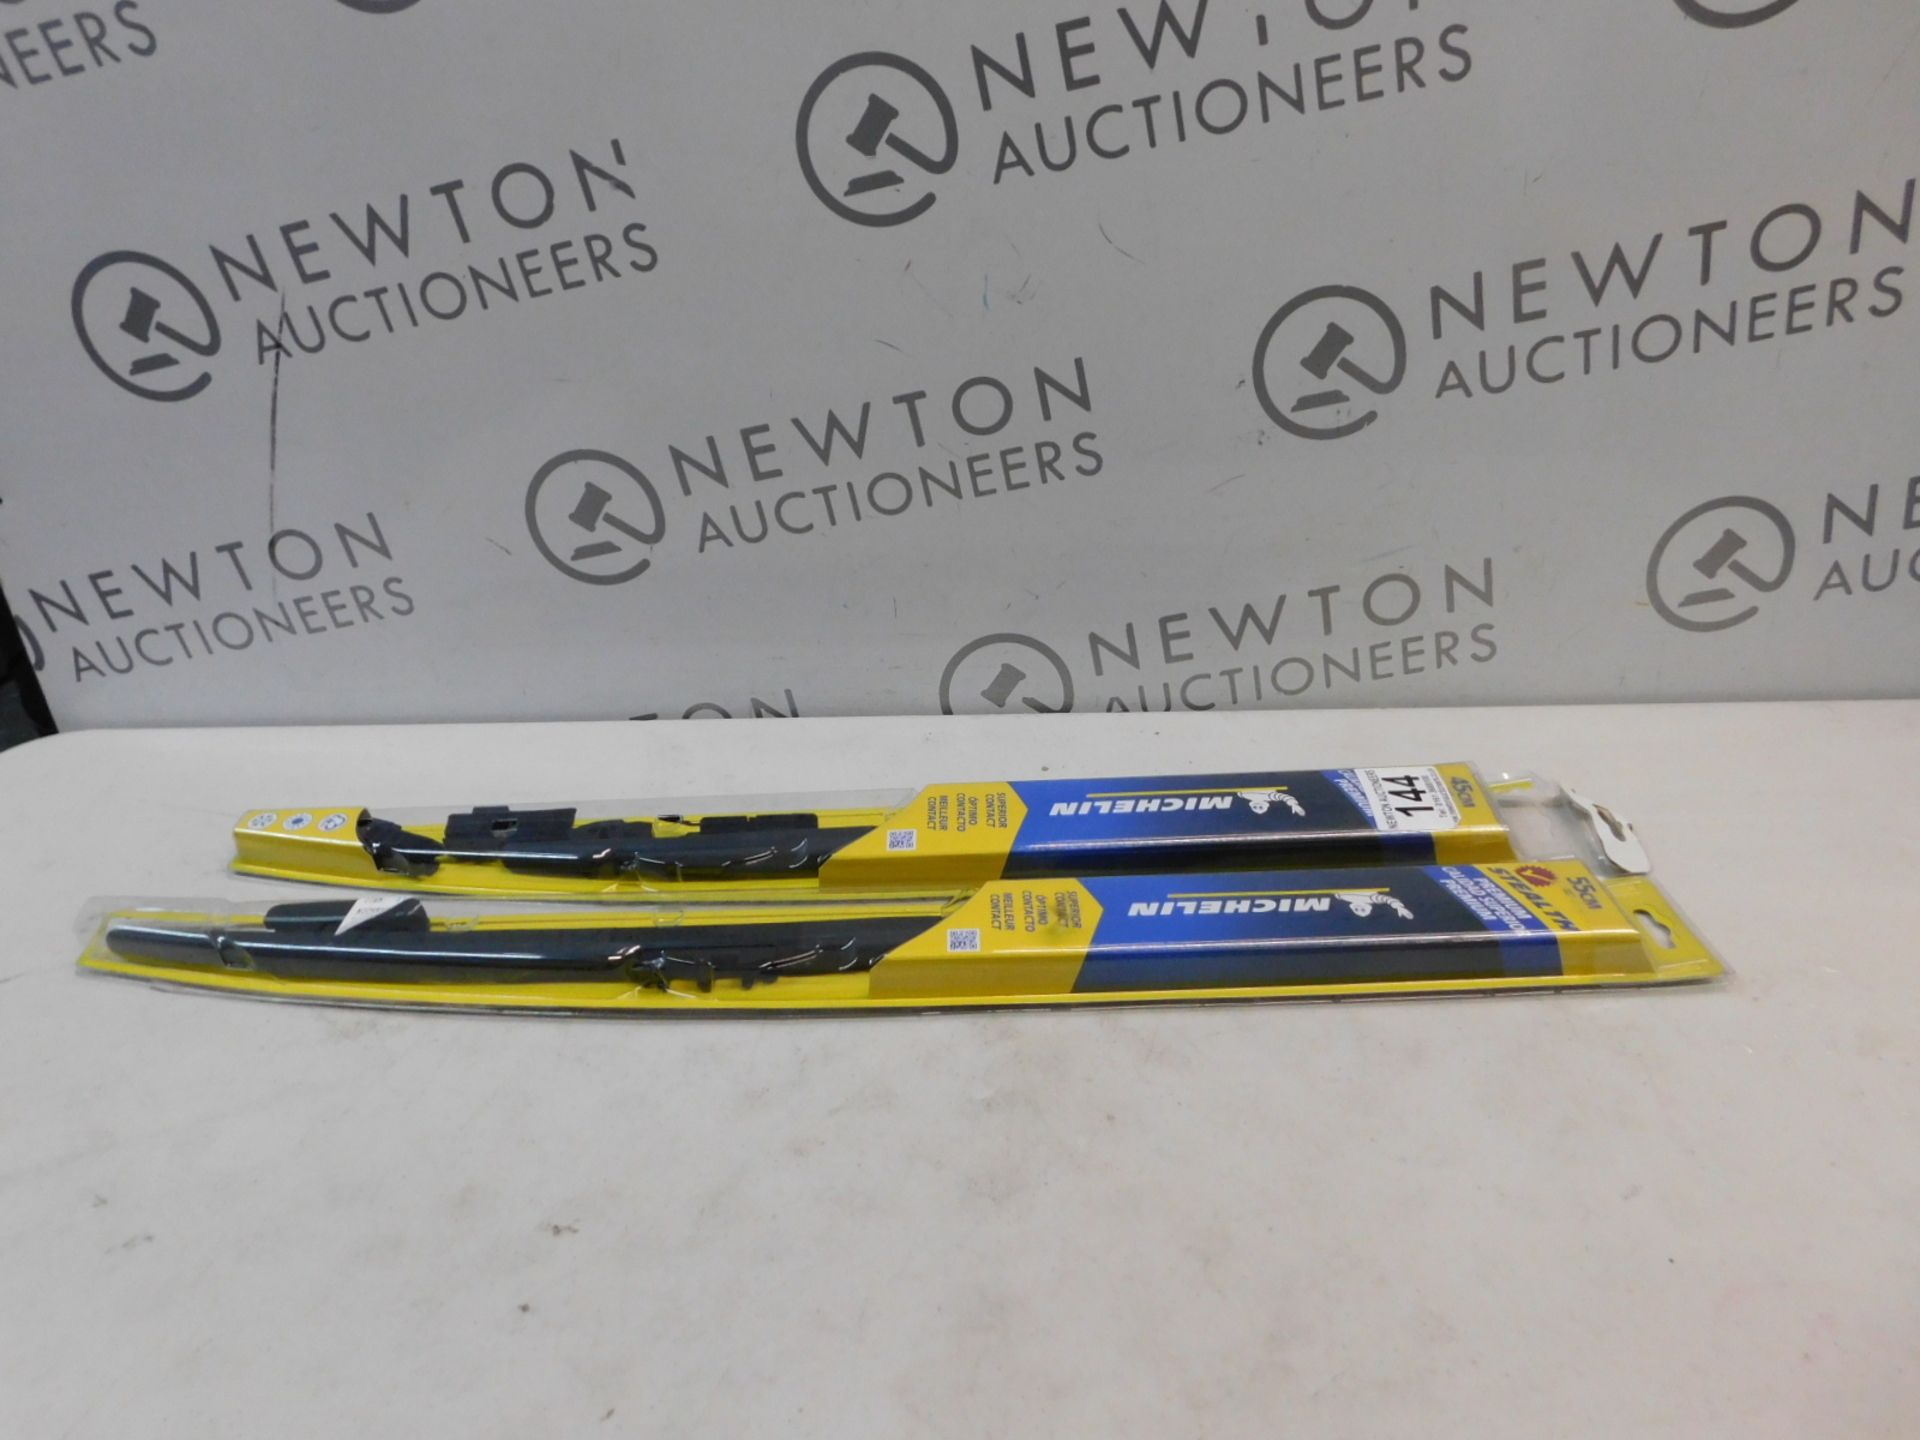 2 PACKS OF MICHELIN STEALTH WIPER BLADES IN VARIOUS SIZES RRP £29.99